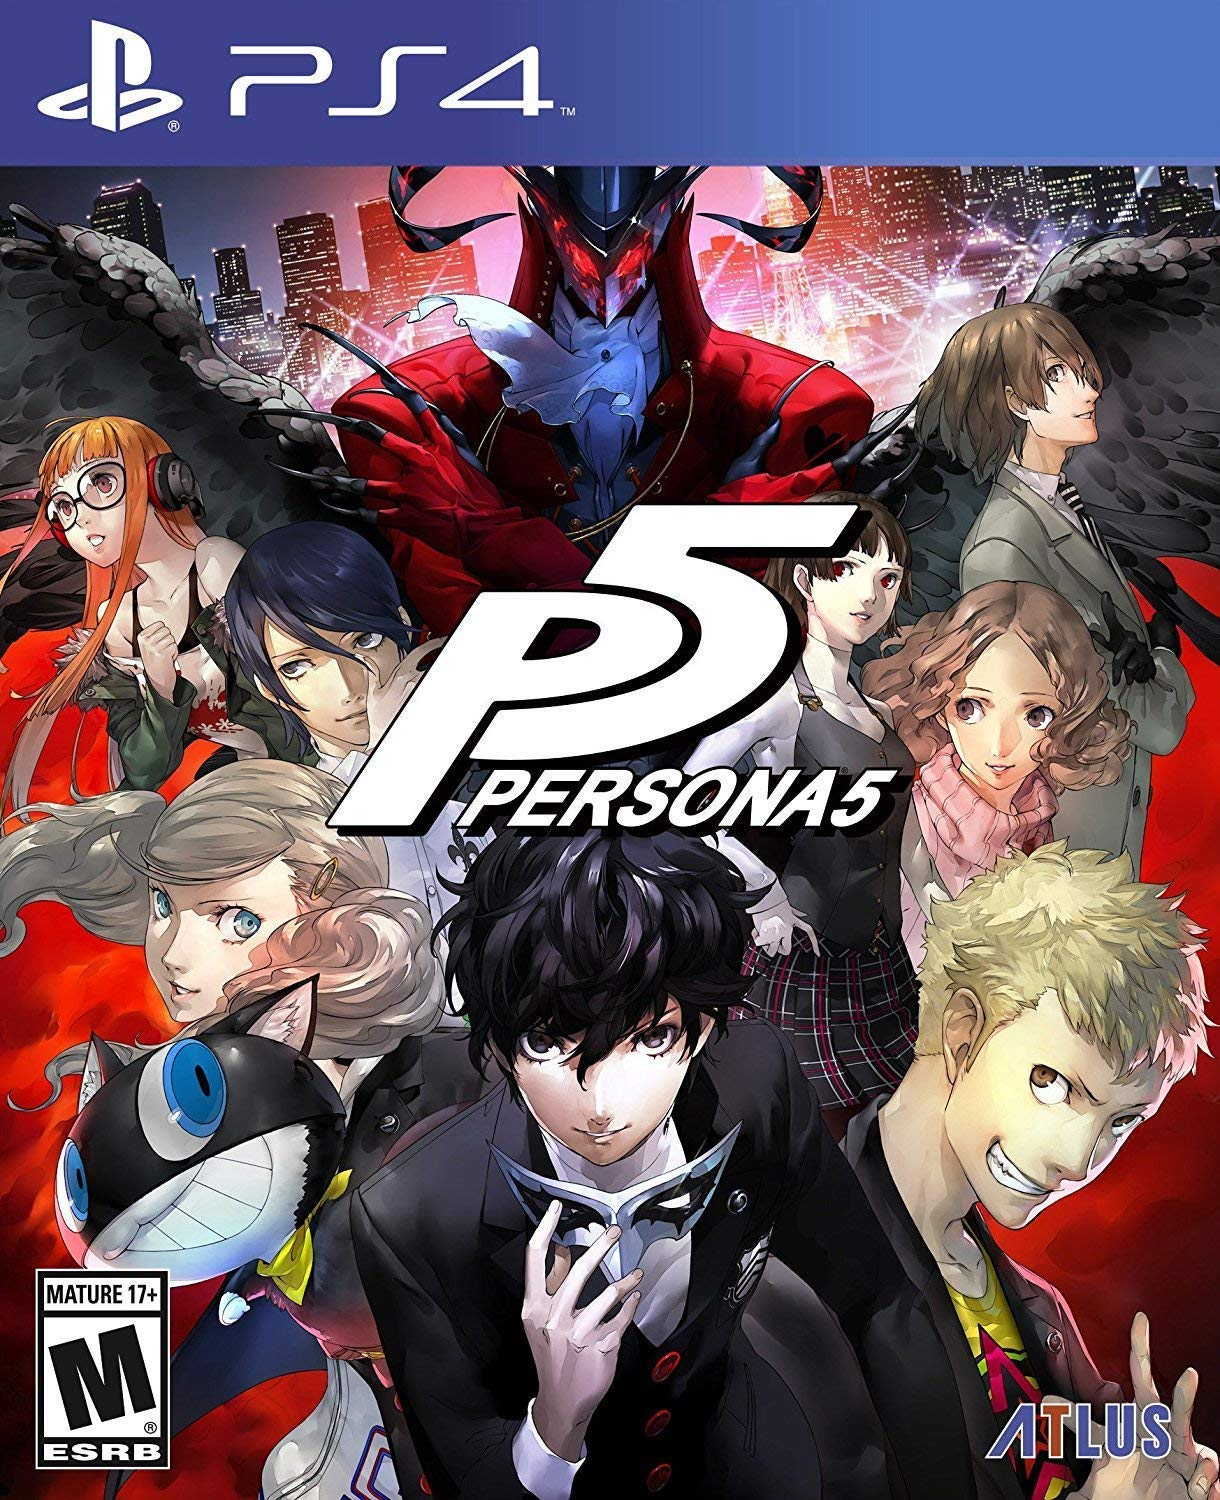 Persona 5 by Atlus